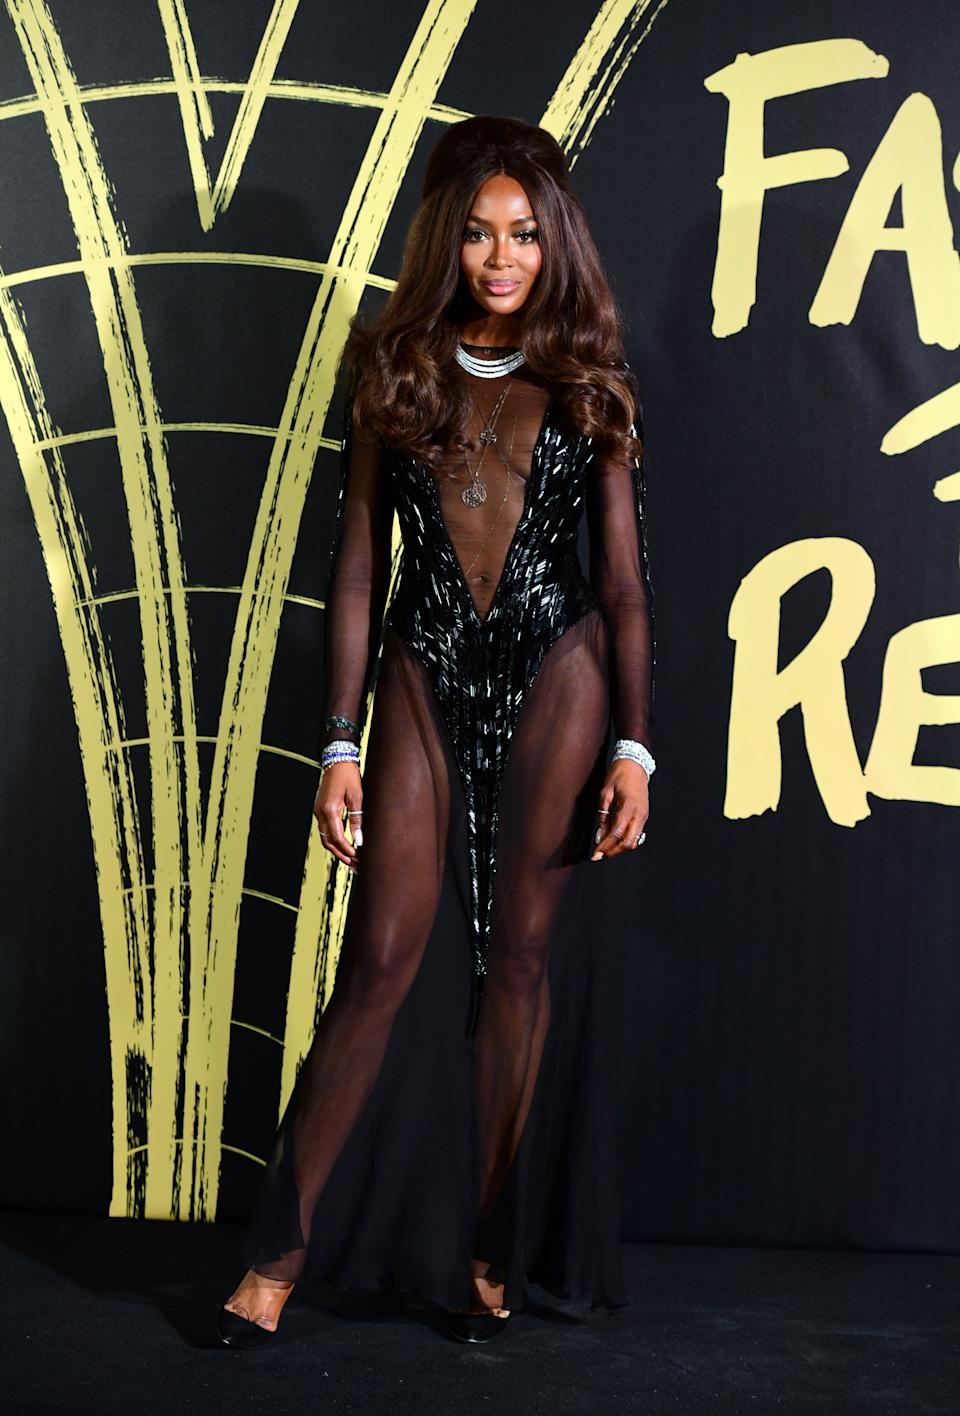 Naomi Campbell arriving on the red carpet for her Fashion For Relief Gala during London Fashion Week [Photo: PA]